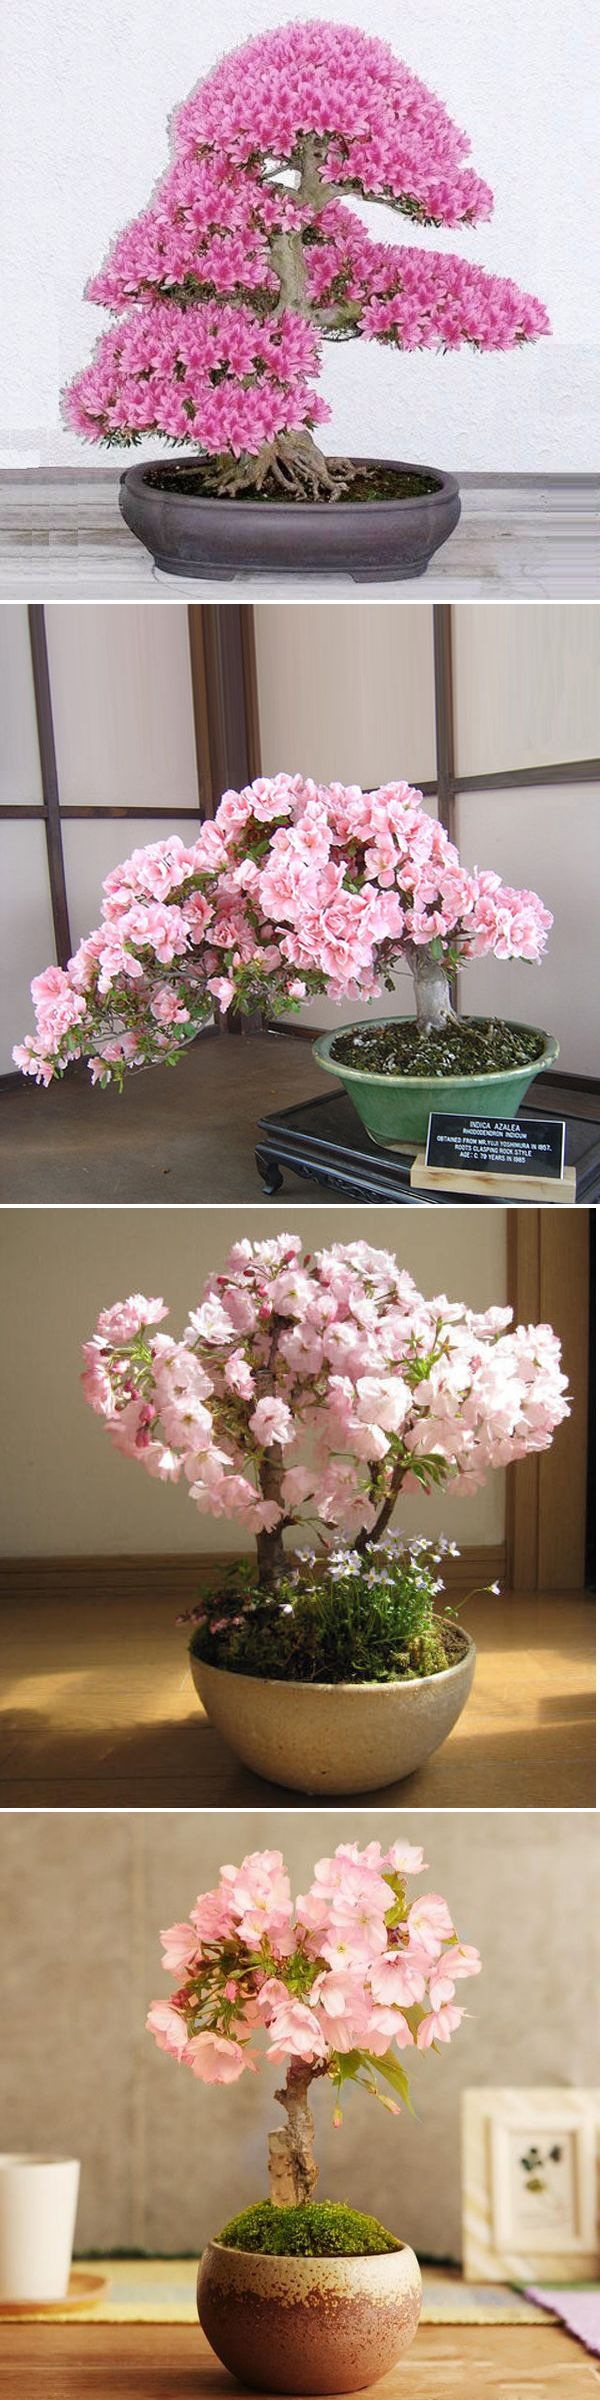 US$2.39 10Pcs Rare Sakura Seeds Cherry Blossoms Seeds Garden Flower Bonsai Tree